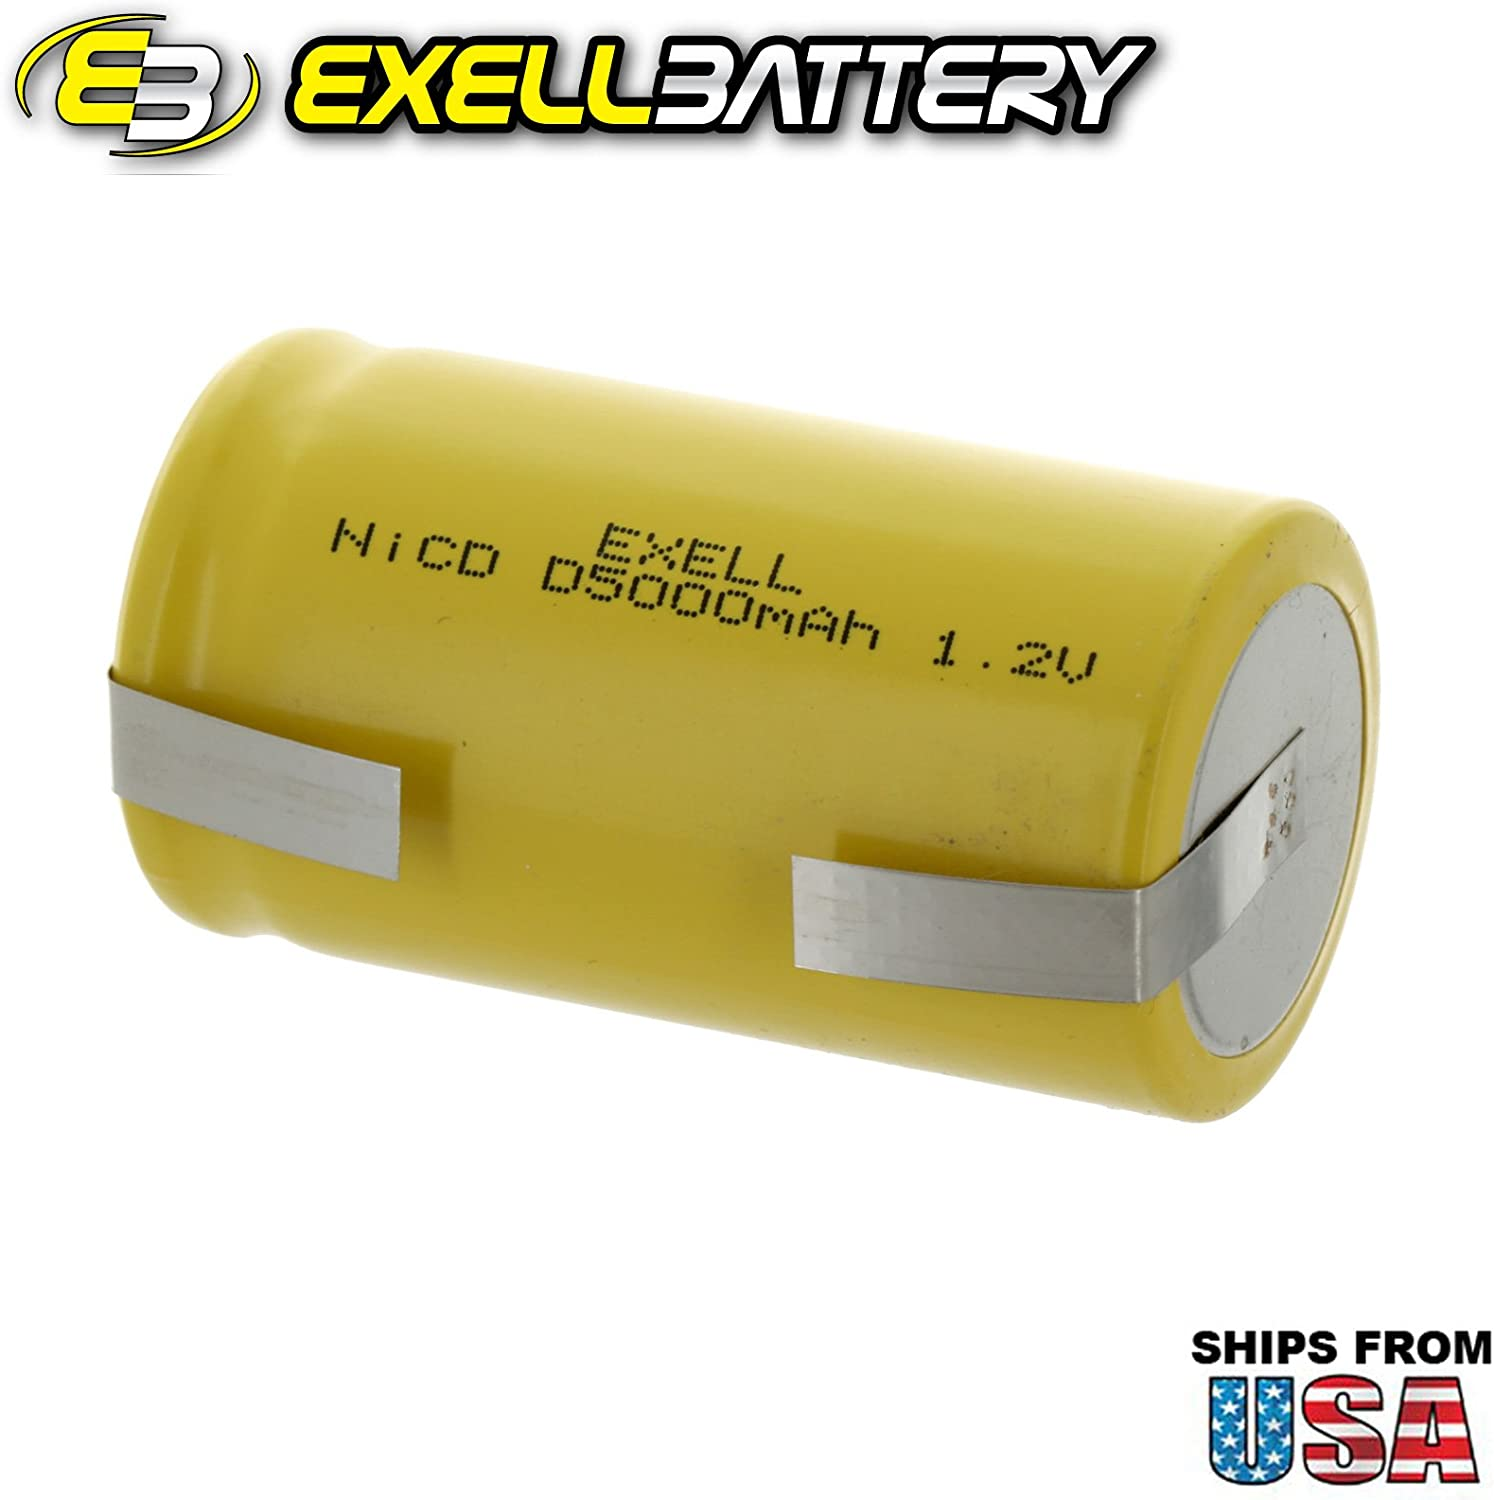 20x Exell D Size 1.2V 5000mAh NiCD Rechargeable Batteries with Tabs for medical instruments//equipment electric tools electric razors toothbrushes radio controlled devices